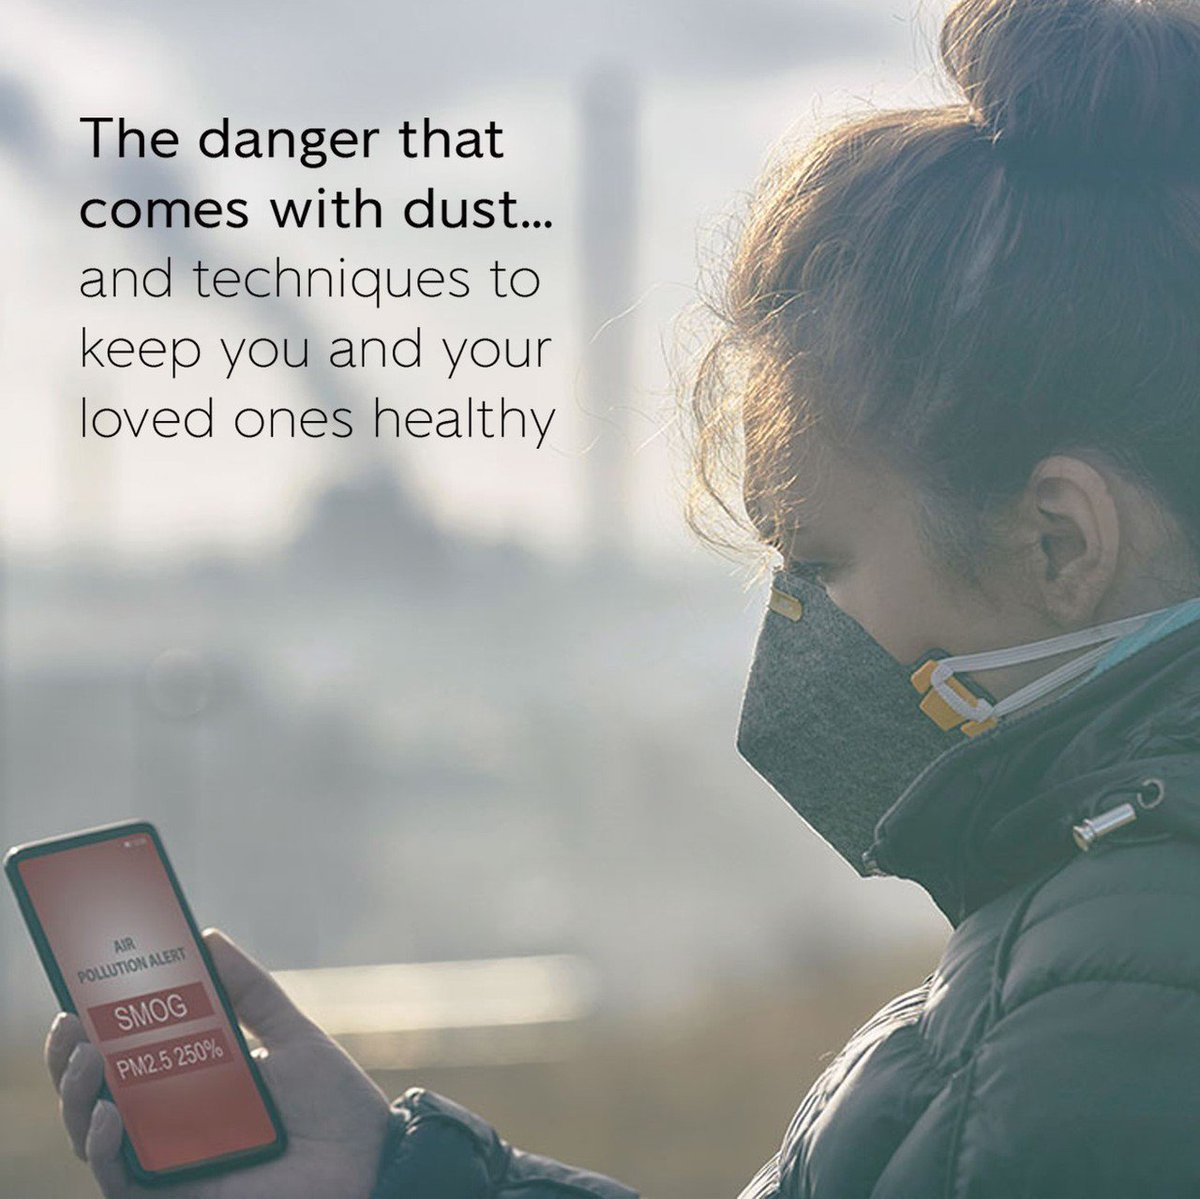 What is PM2.5...and how do we cope with this invisible threat? Find out here http://wu.to/DcGLII #aviance #BerriesPowers #UVExpert #Sunserum #Gluta #PM2.5 #InvisibleThreat #HealthyImmunity